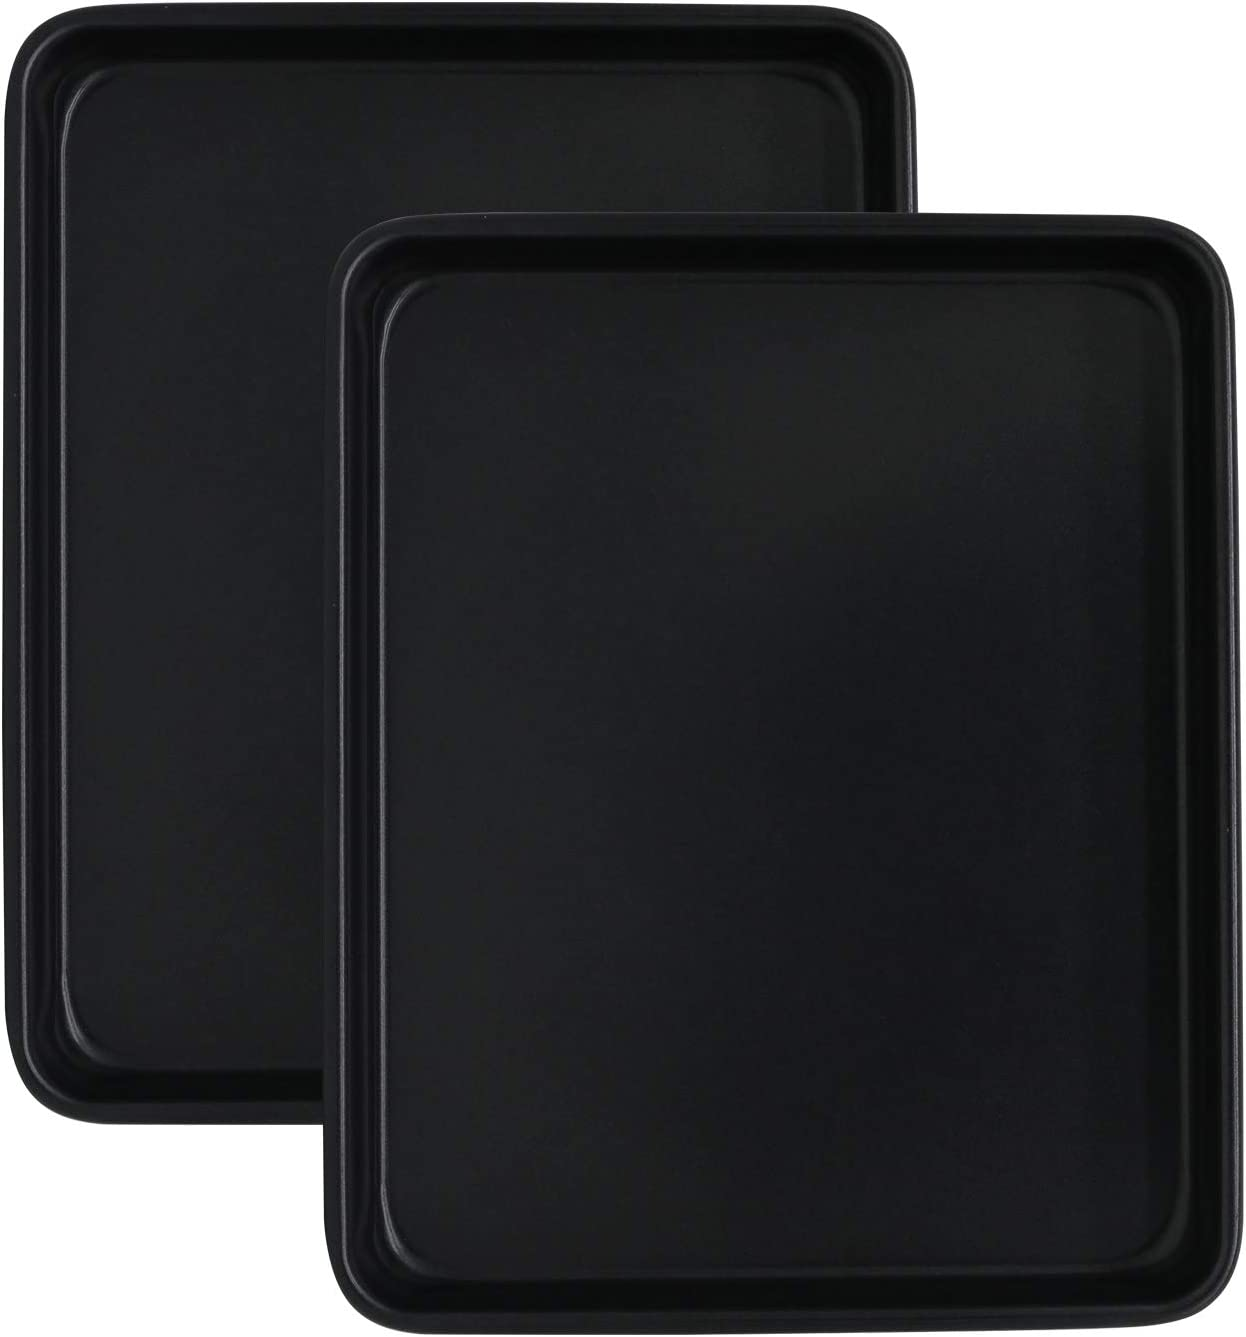 11 Inch Baking Sheets for Oven Set of 2, Shinsin Nonstick Heavy Gauge Steel 11X9 Inch Baking Cookie Pans Sheets, 1-inch Deep Professional Baking Trays for Toaster Oven Replacement (Black)